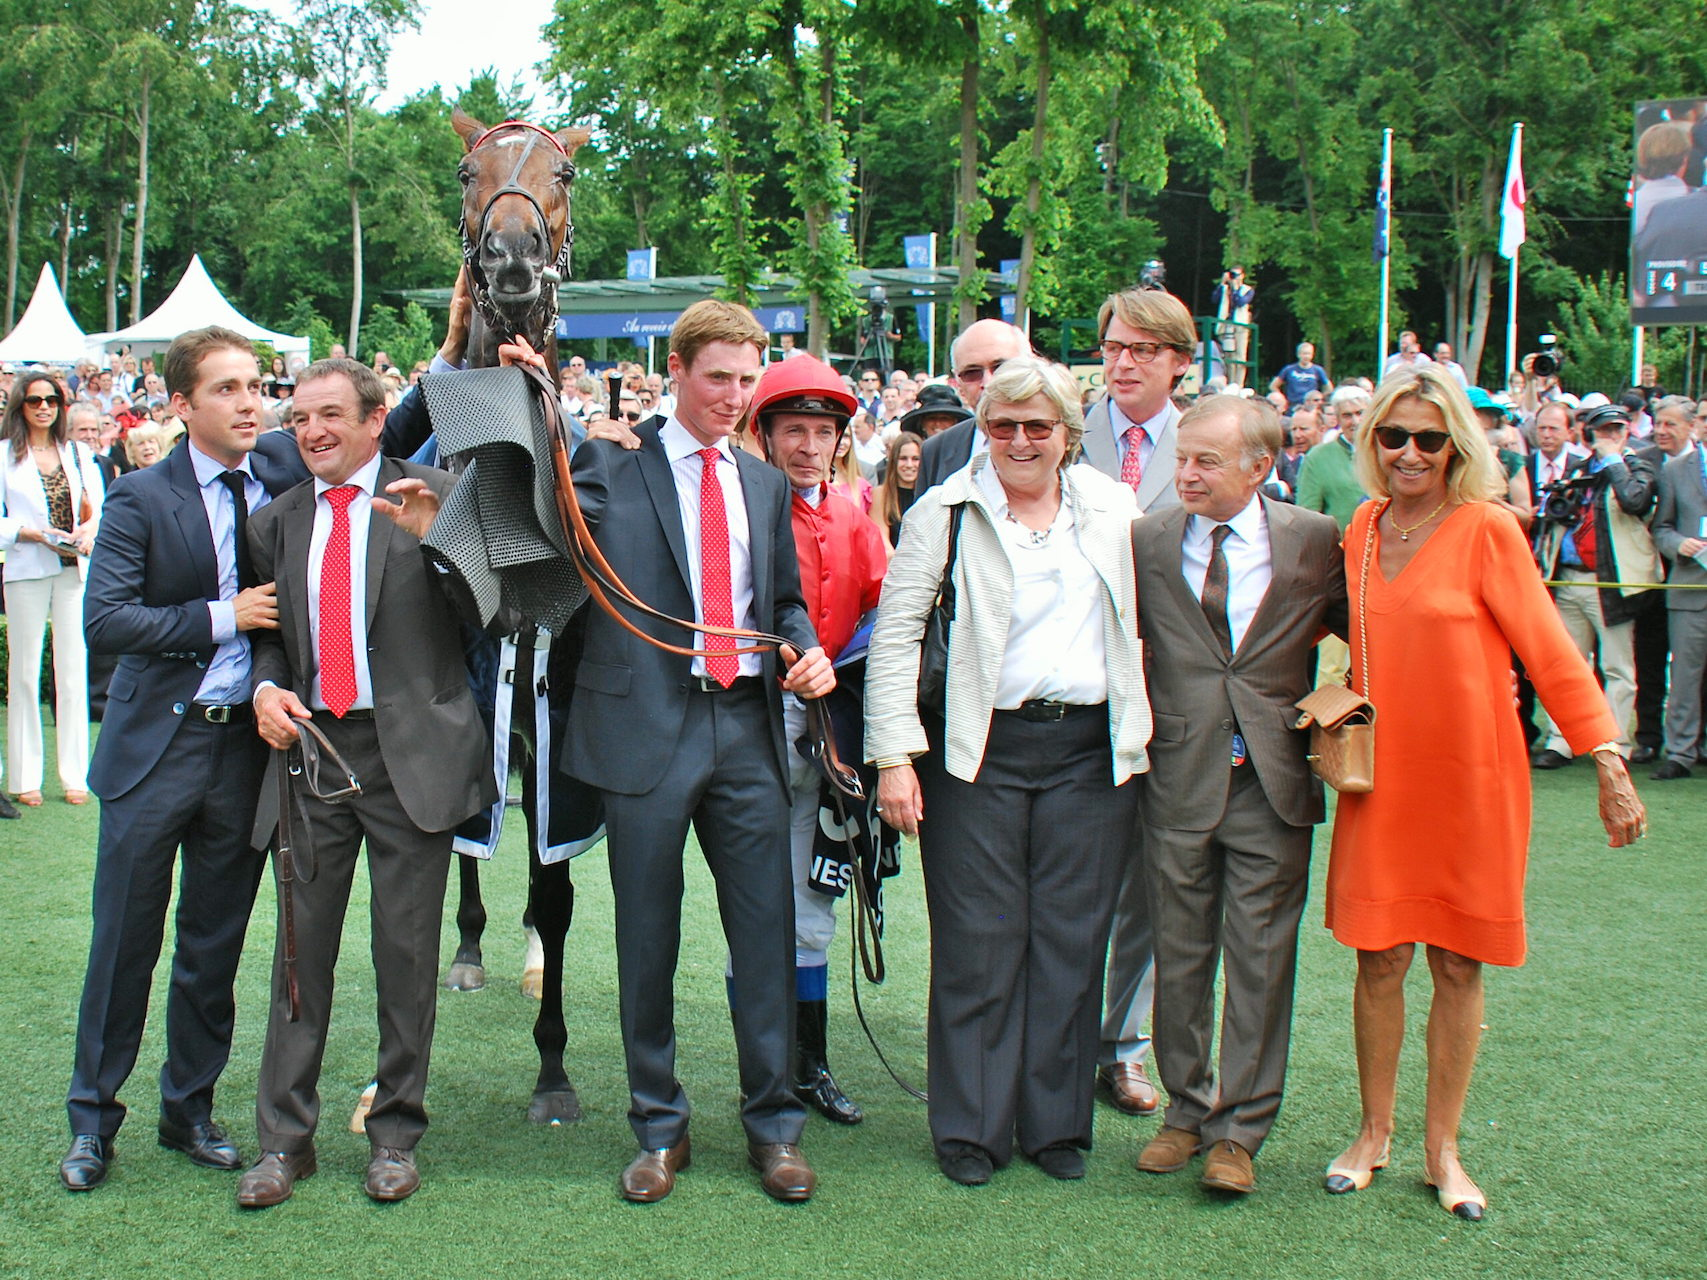 Pure joy: Treve, Criquette, brother Freddy (on Criquette's right), jockey Thierry Jarnet and other winning connections after the 2013 Prix de Diane at Chantilly. The filly was owned by Haras du Quesnay at the time but was then bought by Al Shaqab. Photo: John Gilmore